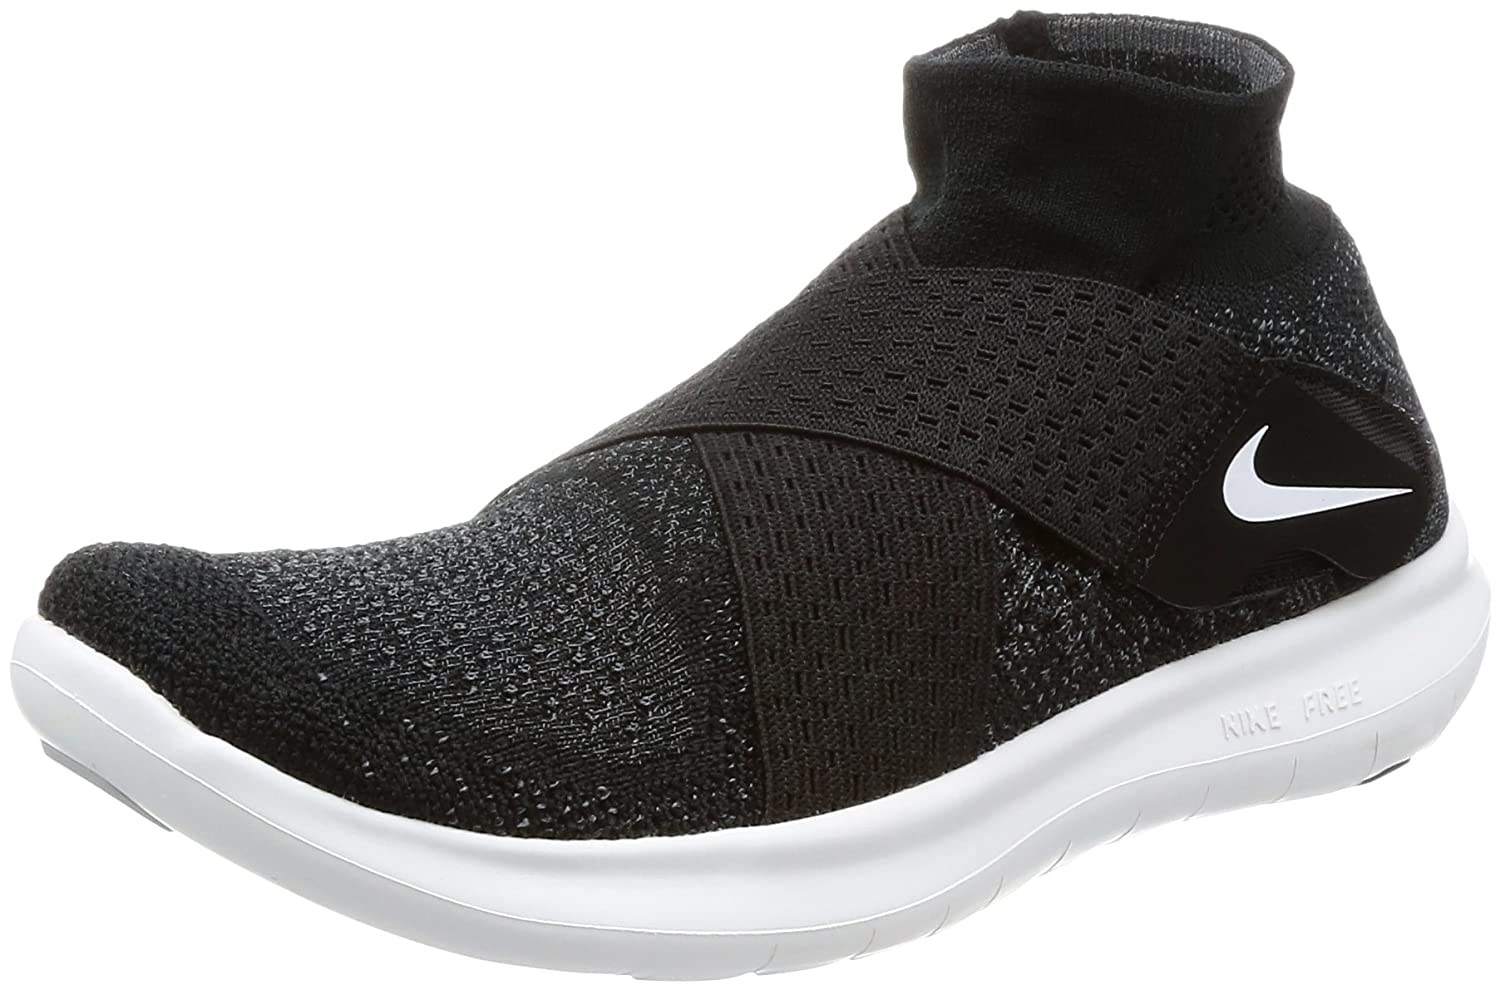 NIKE Women's Free RN Motion FK 2017 Running Shoe B00CER1W72 11 B(M) US|Black/White-dark Grey-volt